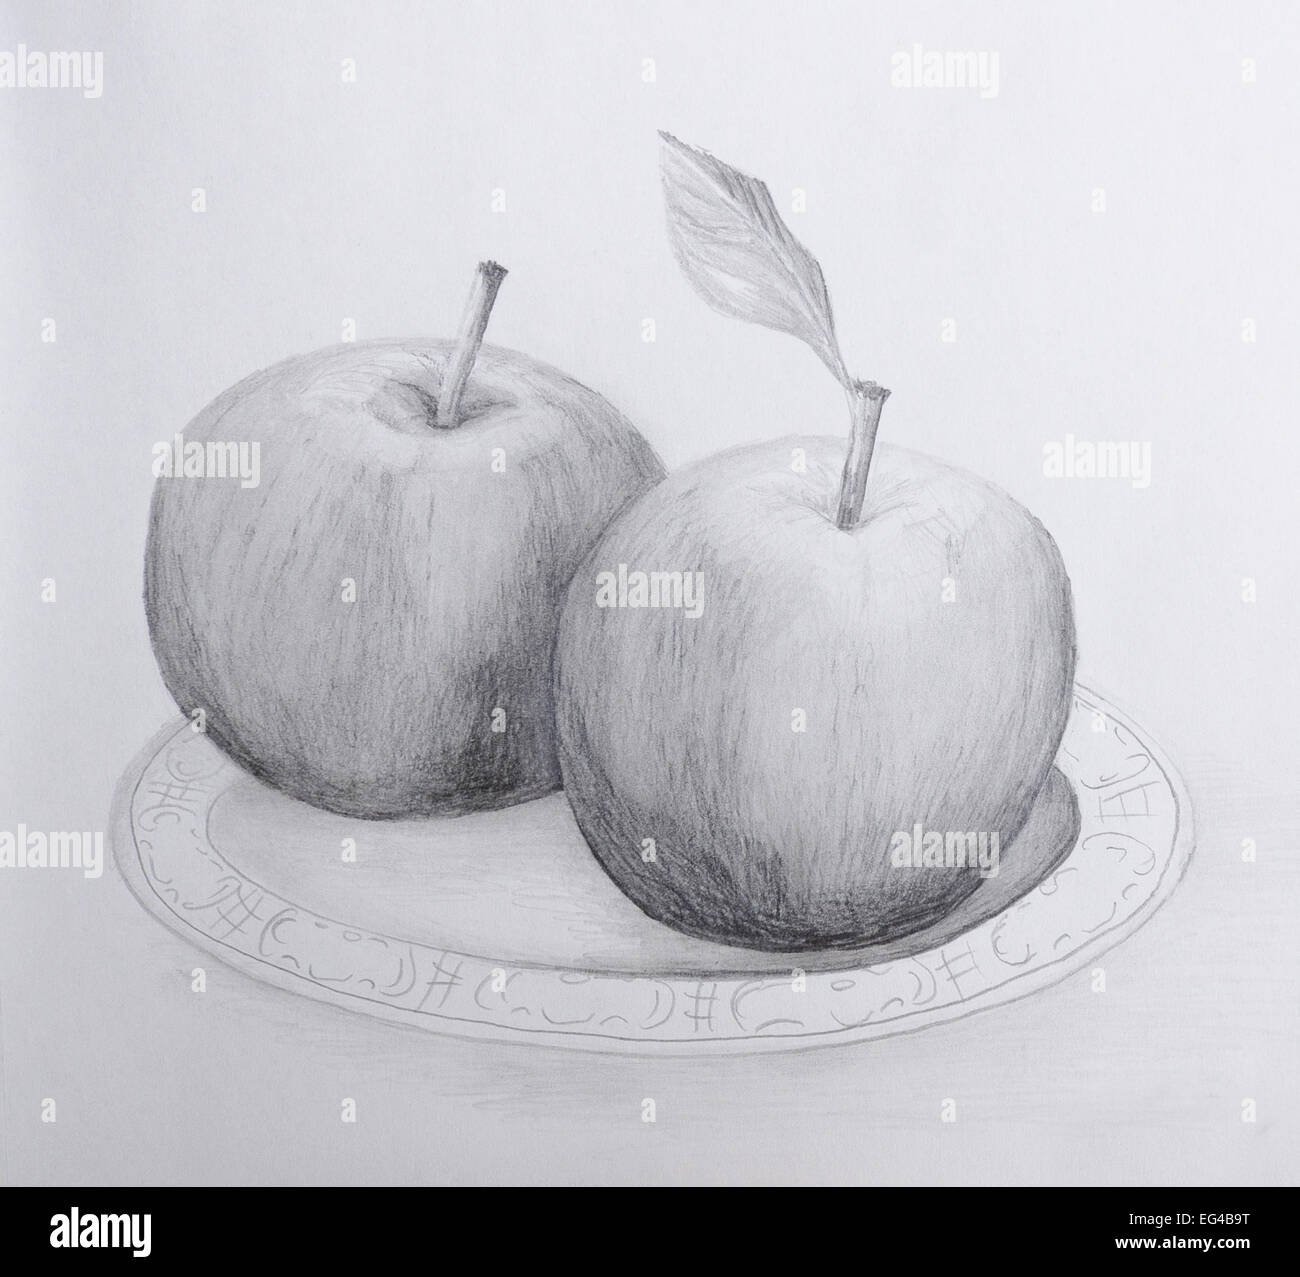 Pencil drawing of two apples on a plate grayscale on cartridge paper